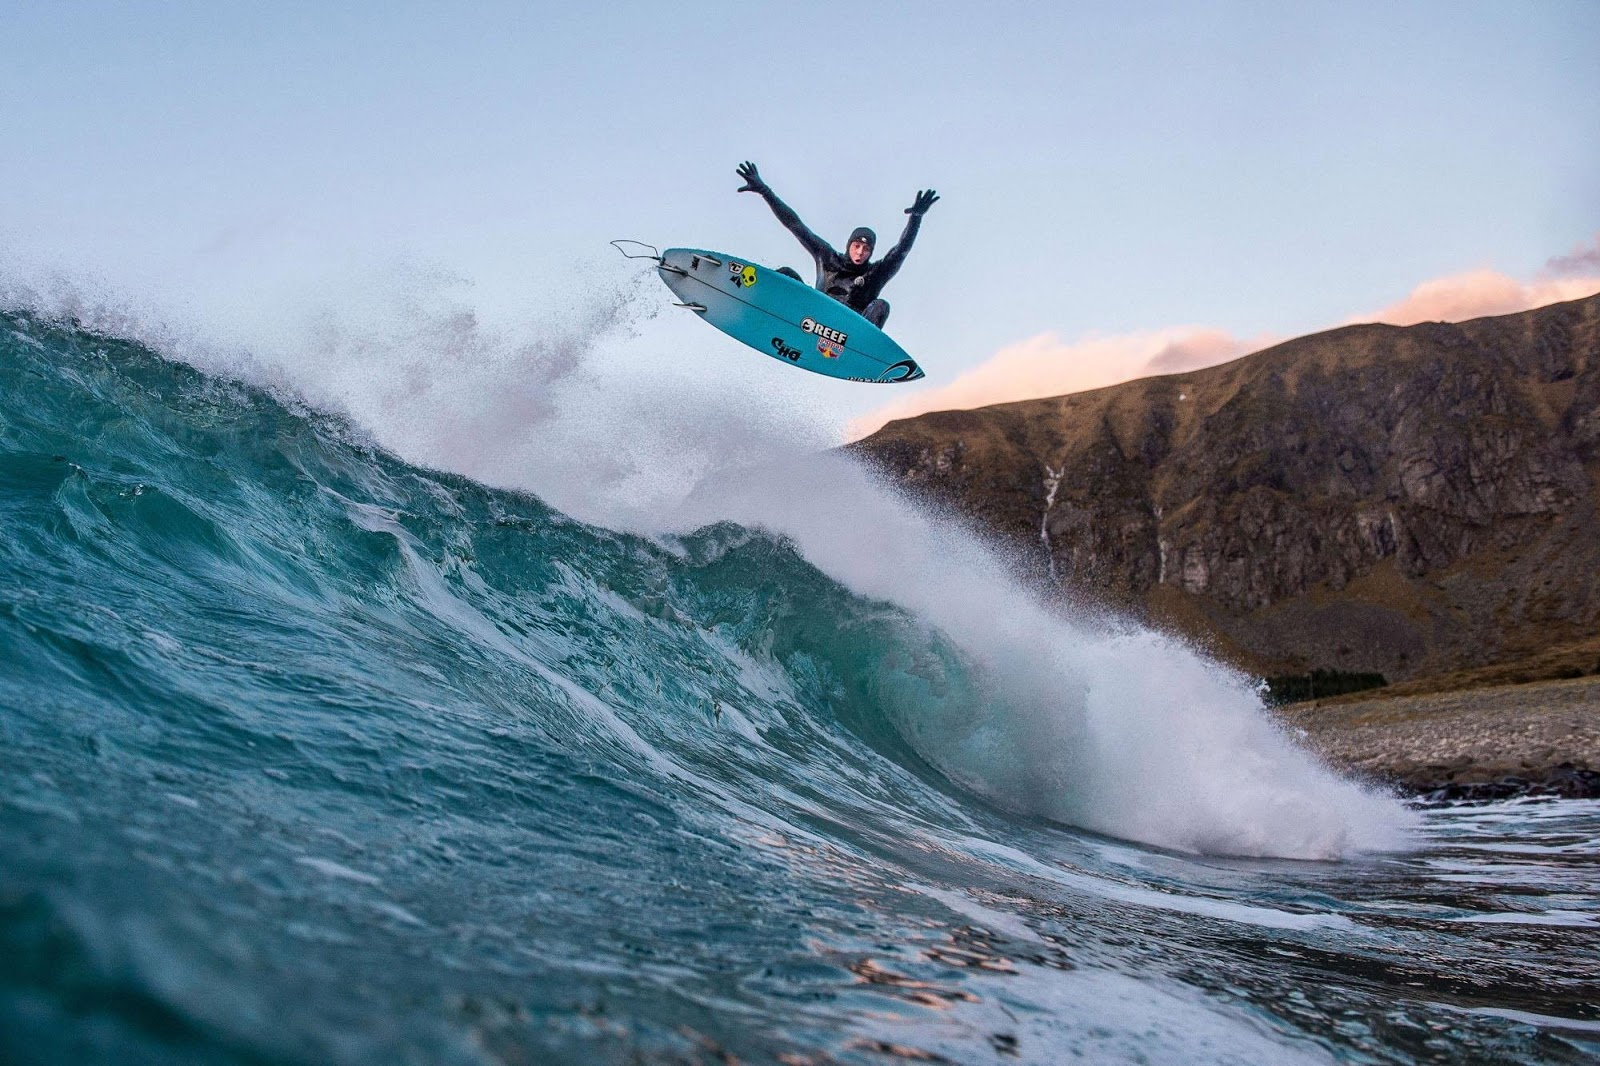 mick fanning surfing norway chasing the shot aerial